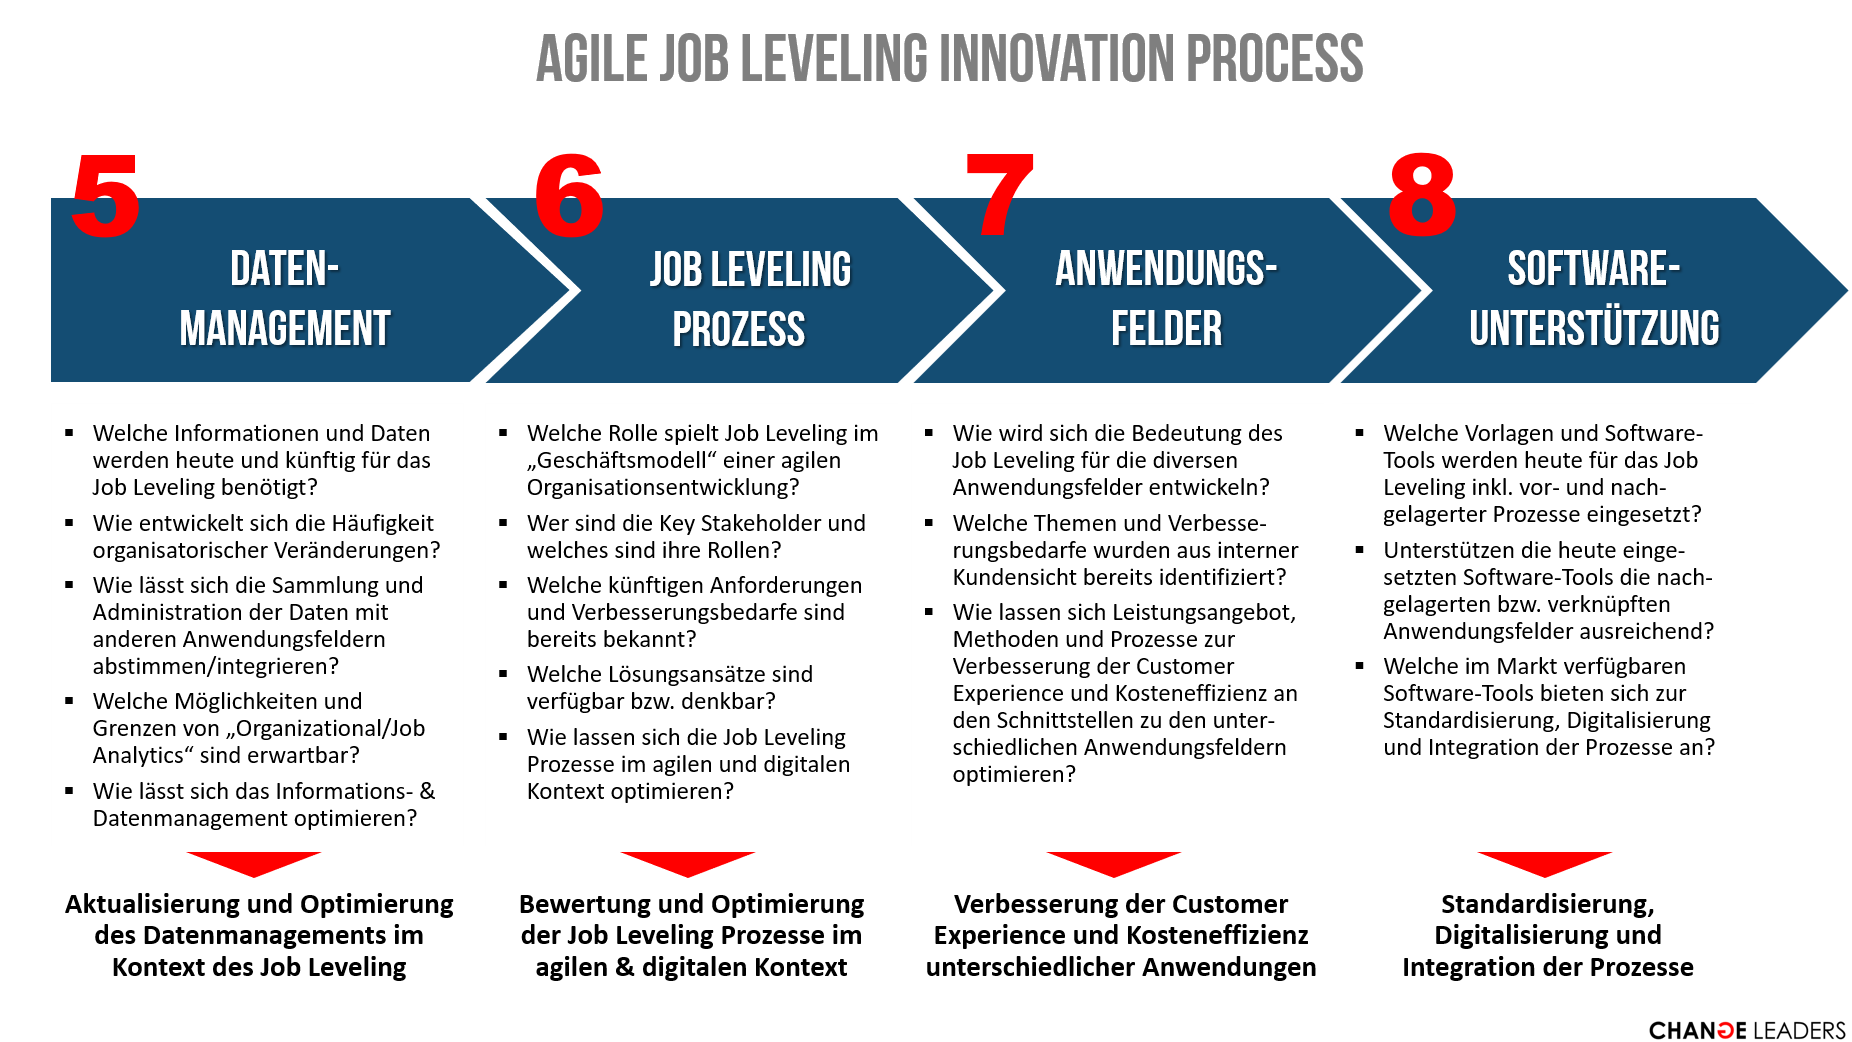 agile-job-leveling-innovation-process_2